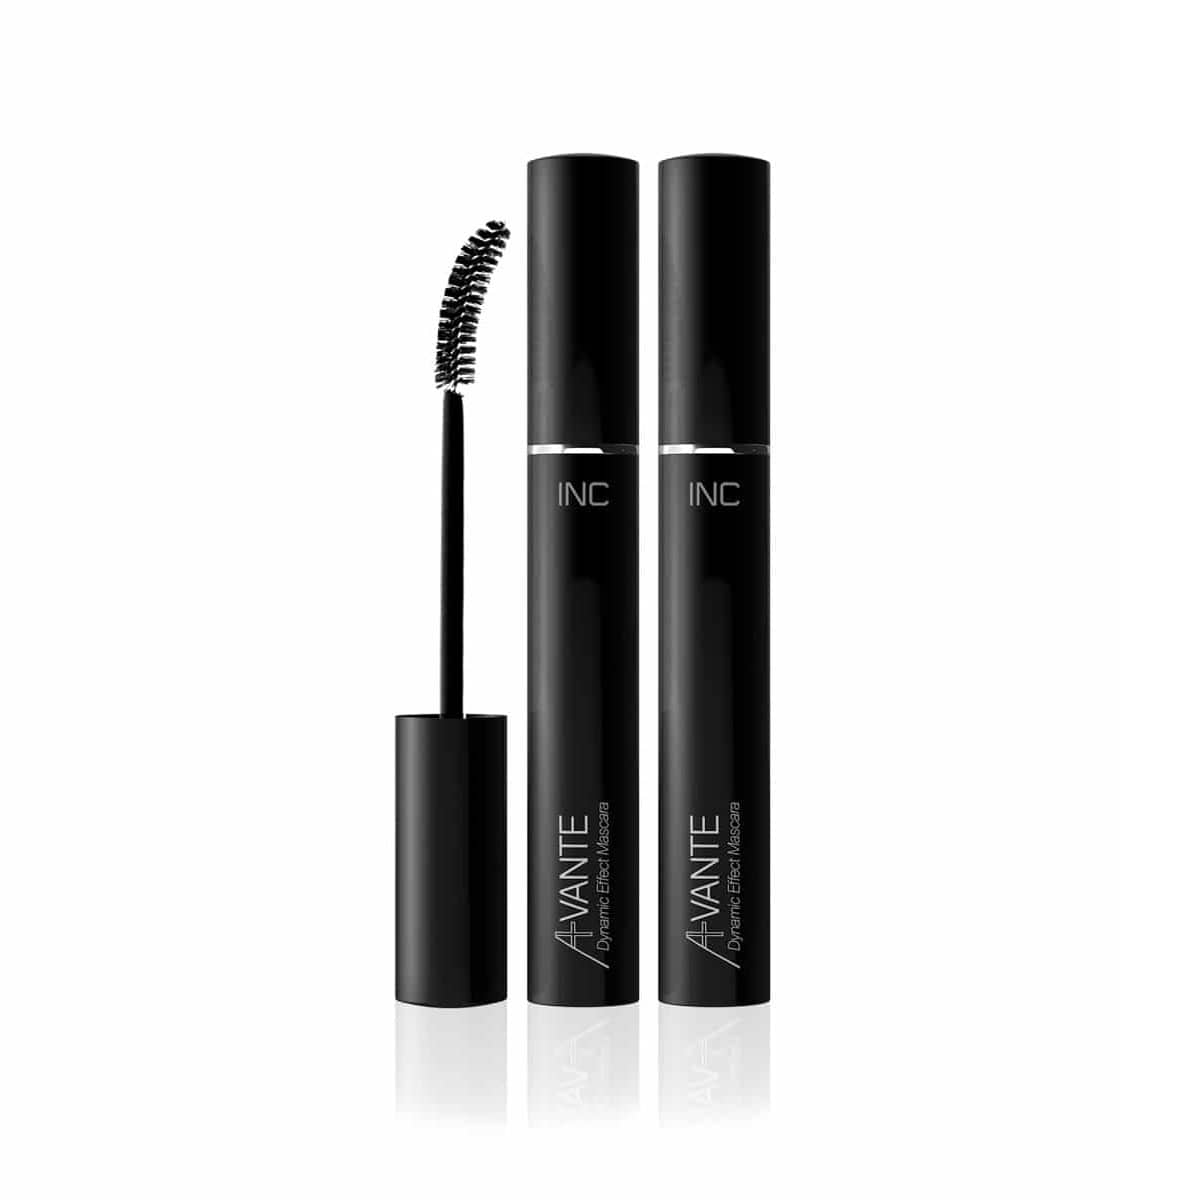 75bca95c132 Bridal & Special Occasion Makeup - Beauty Secrets Day Spa & Beauty ...